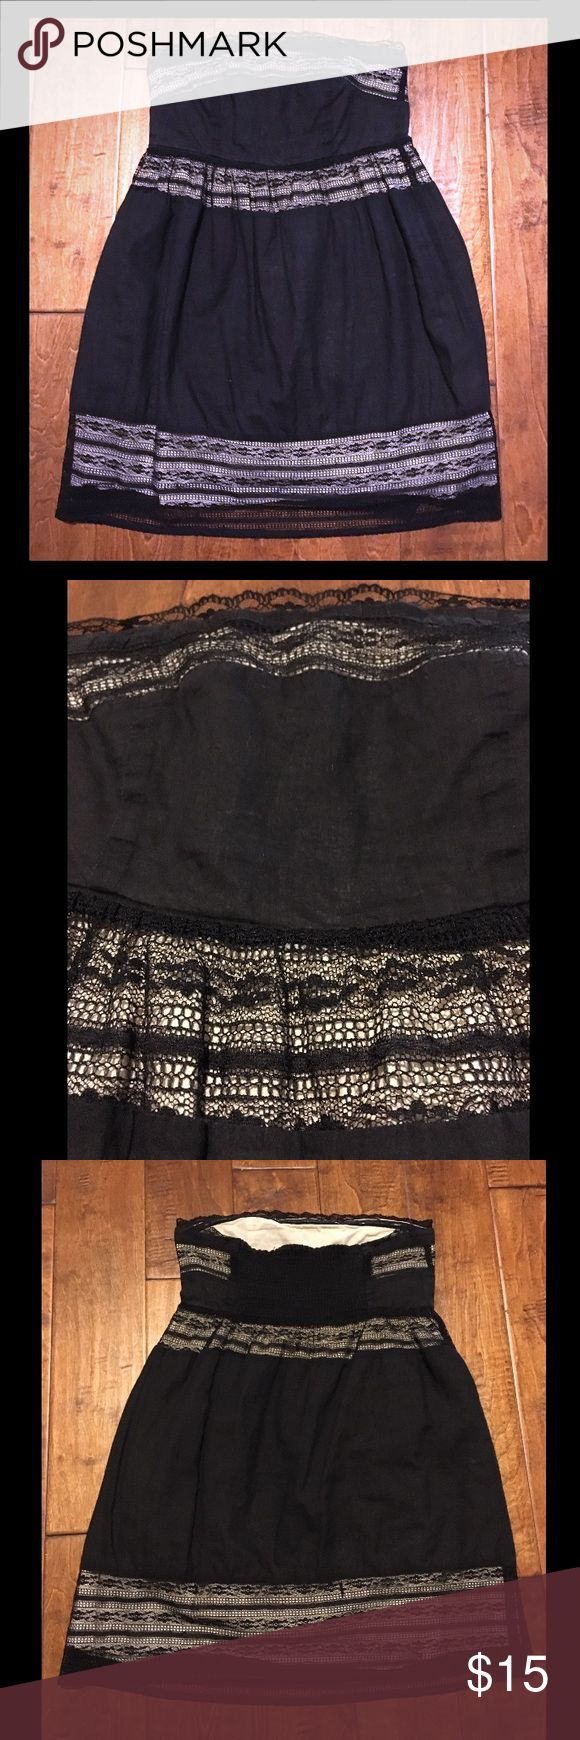 Sleeveless Mini Dress Black and beige Mini Dress • Sleeveless • Black lace panels with beige inner lining • Non-slip grip built inside • Preloved: black color is slightly faded; but no rips, no stains • Offers welcome! Dresses Mini